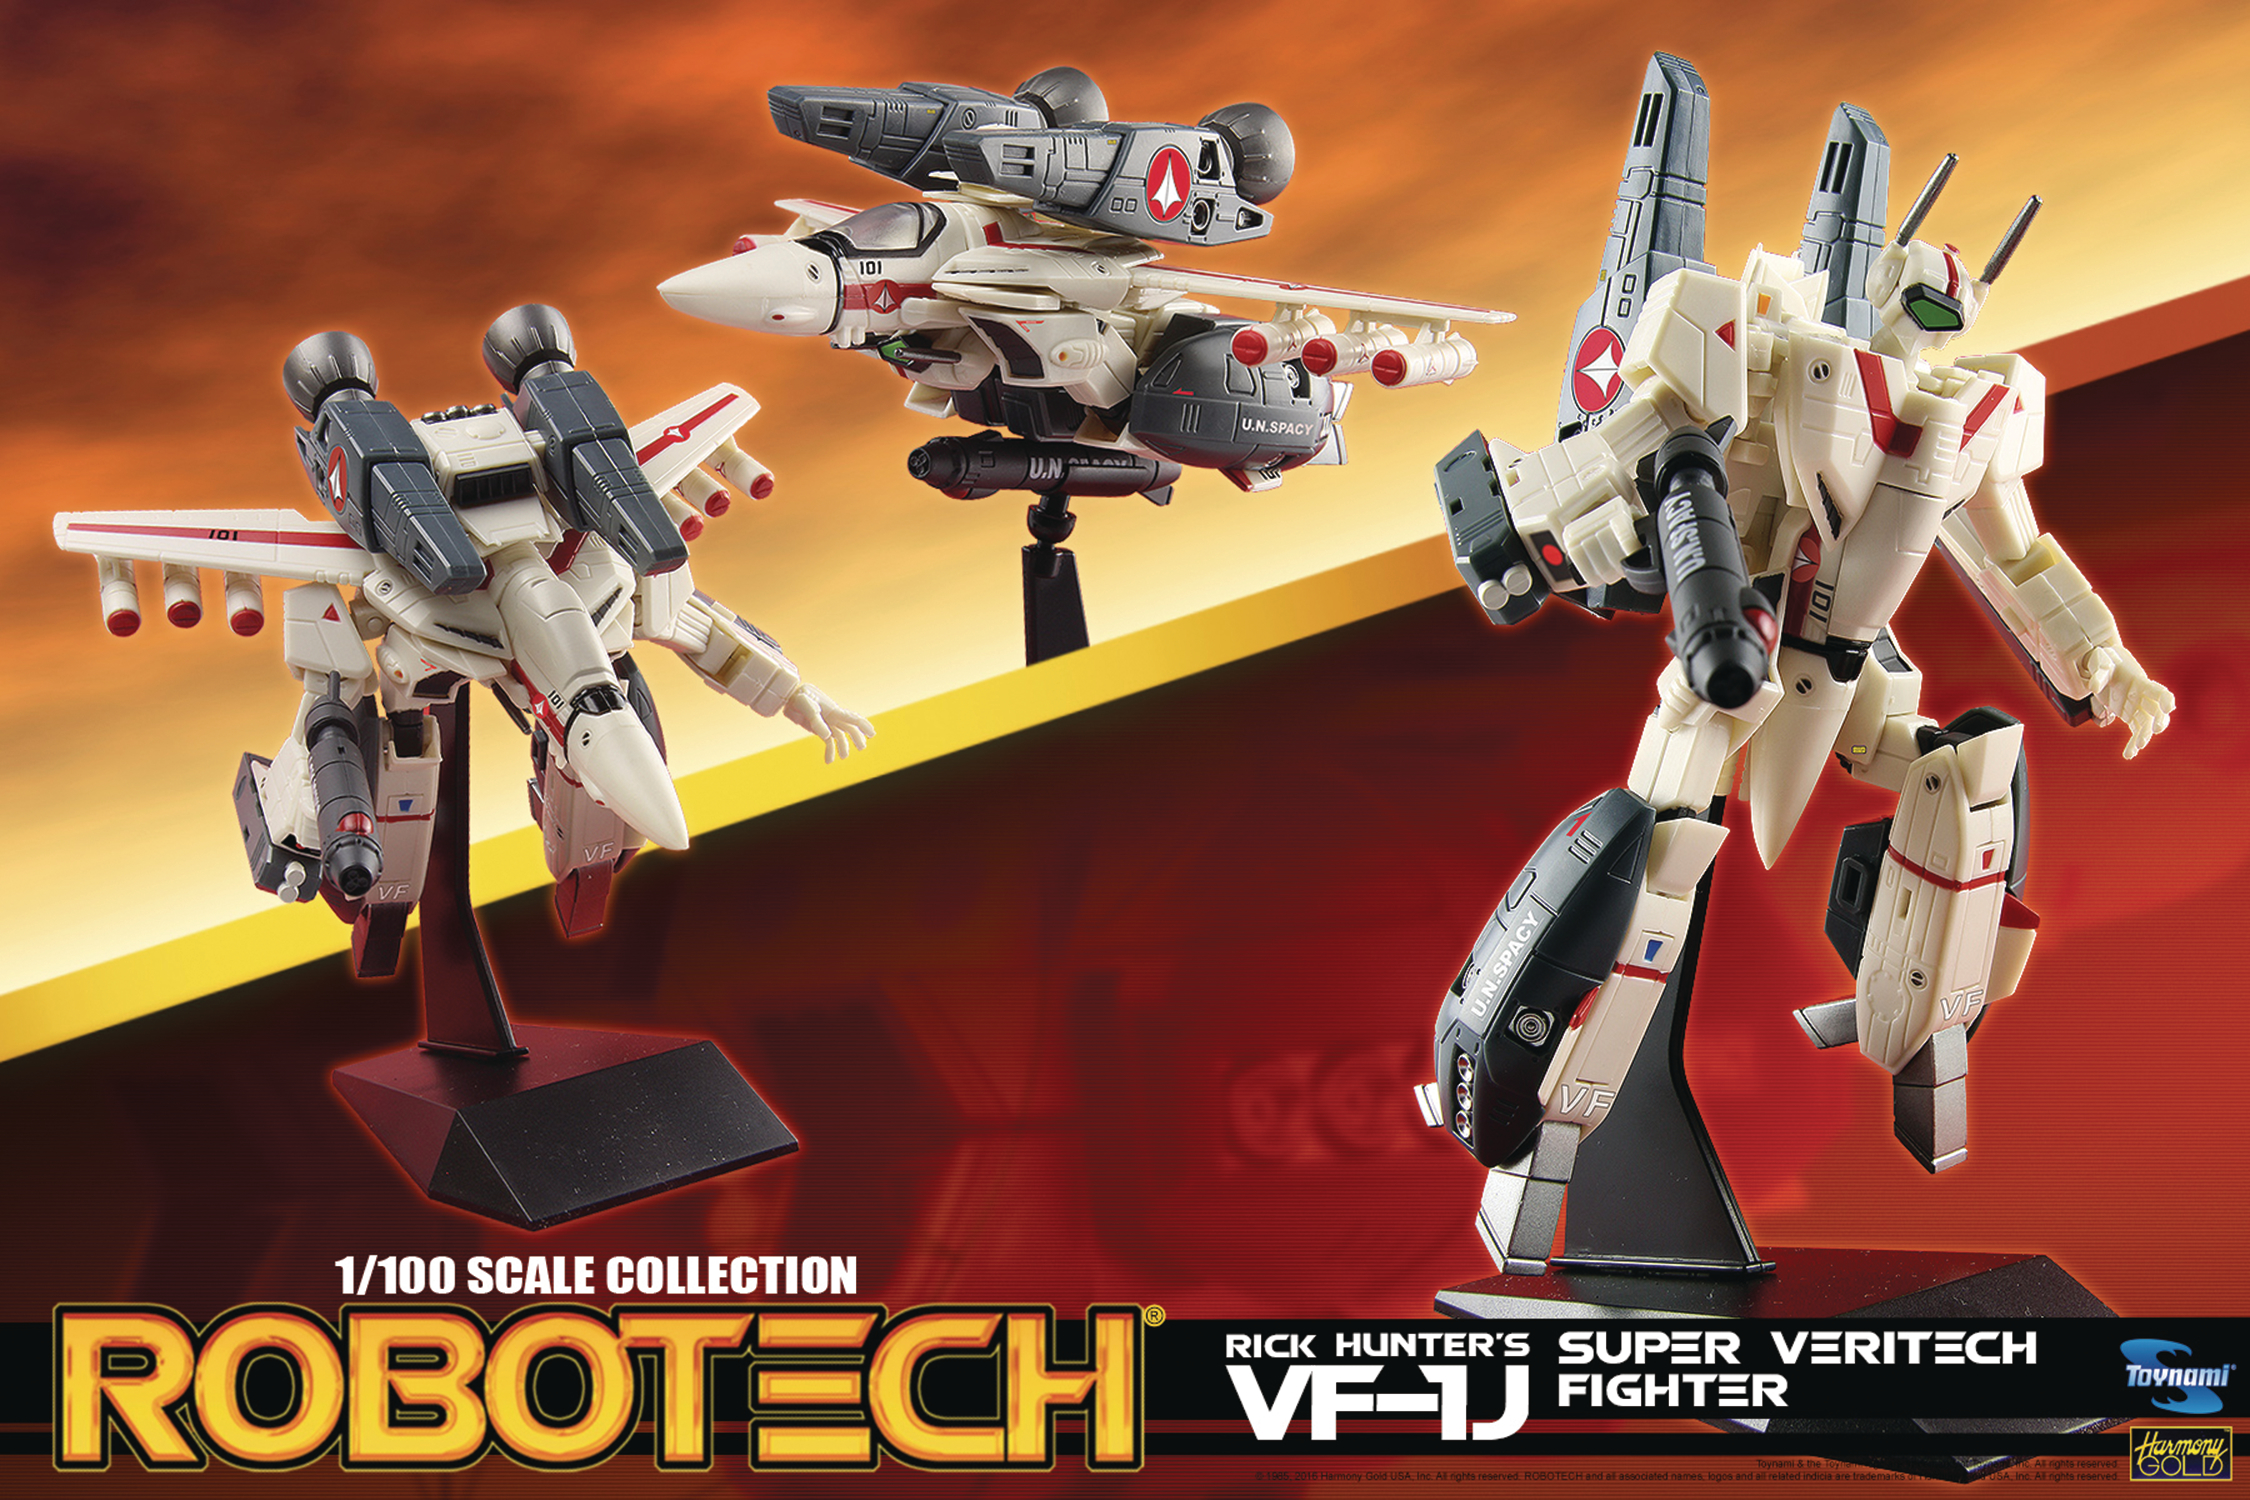 ROBOTECH 1/100 SCALE RICK HUNTER SUPER VERITECH AF